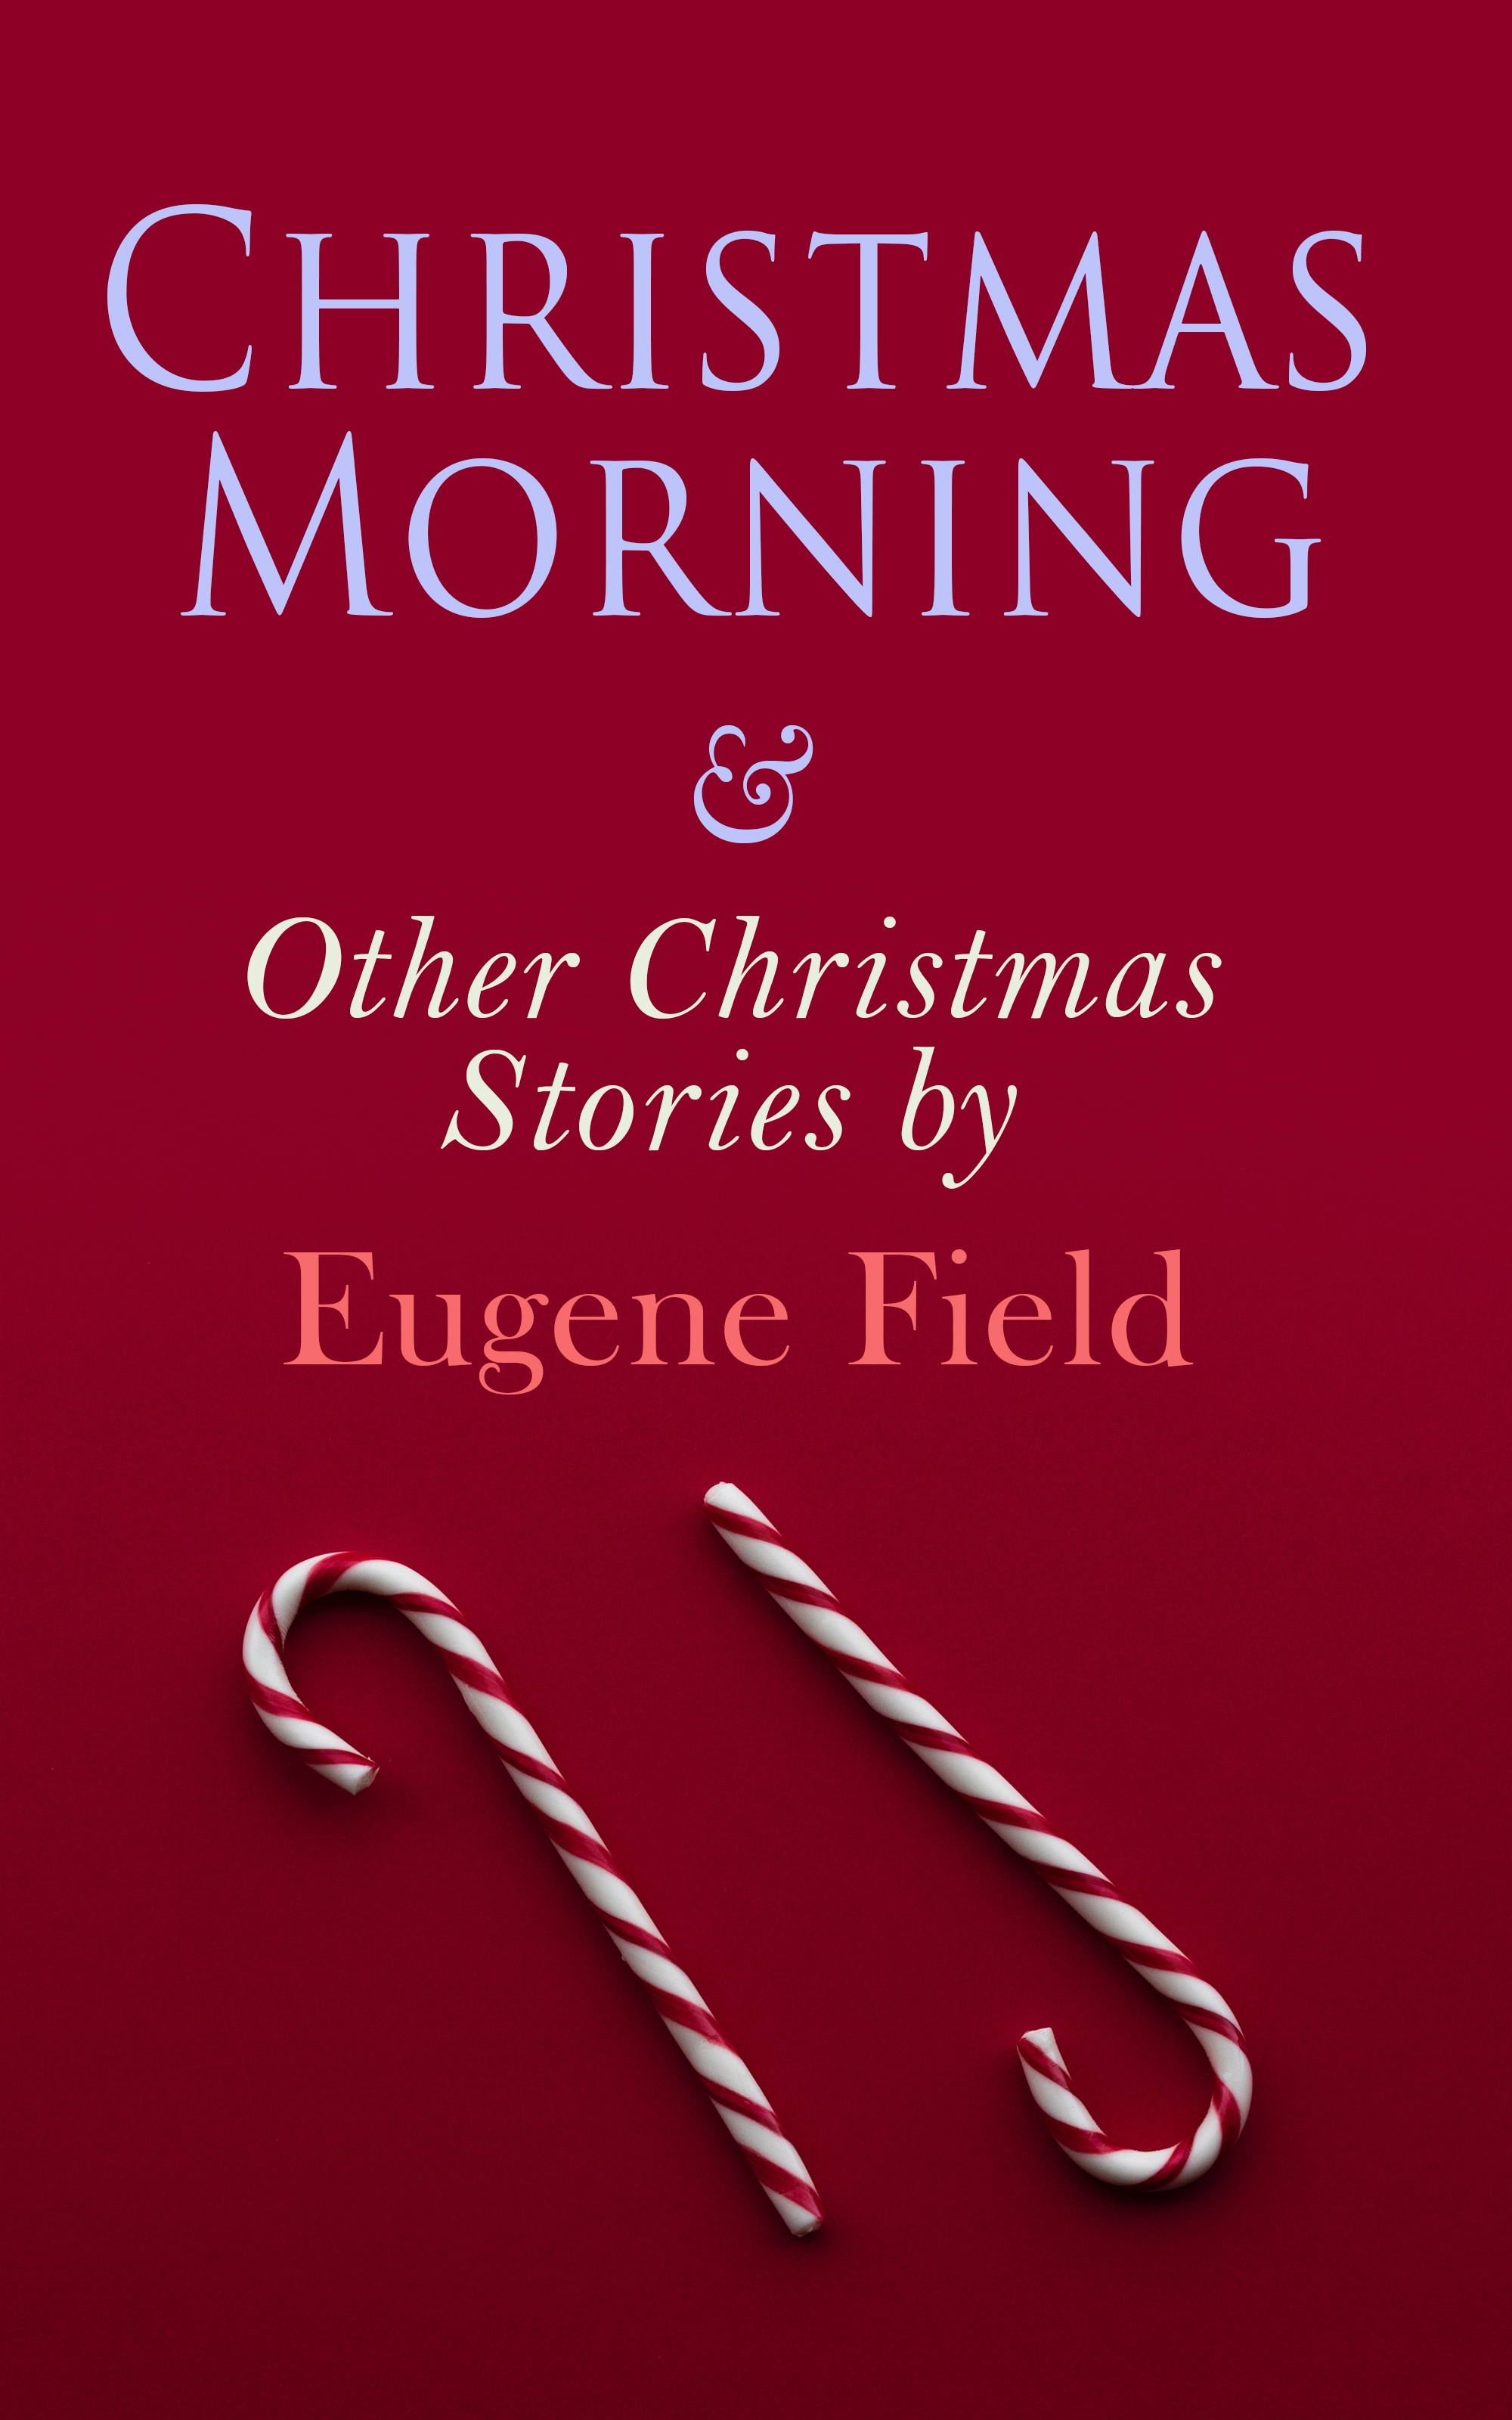 цена Field Eugene Christmas Morning & Other Christmas Stories by Eugene Field онлайн в 2017 году